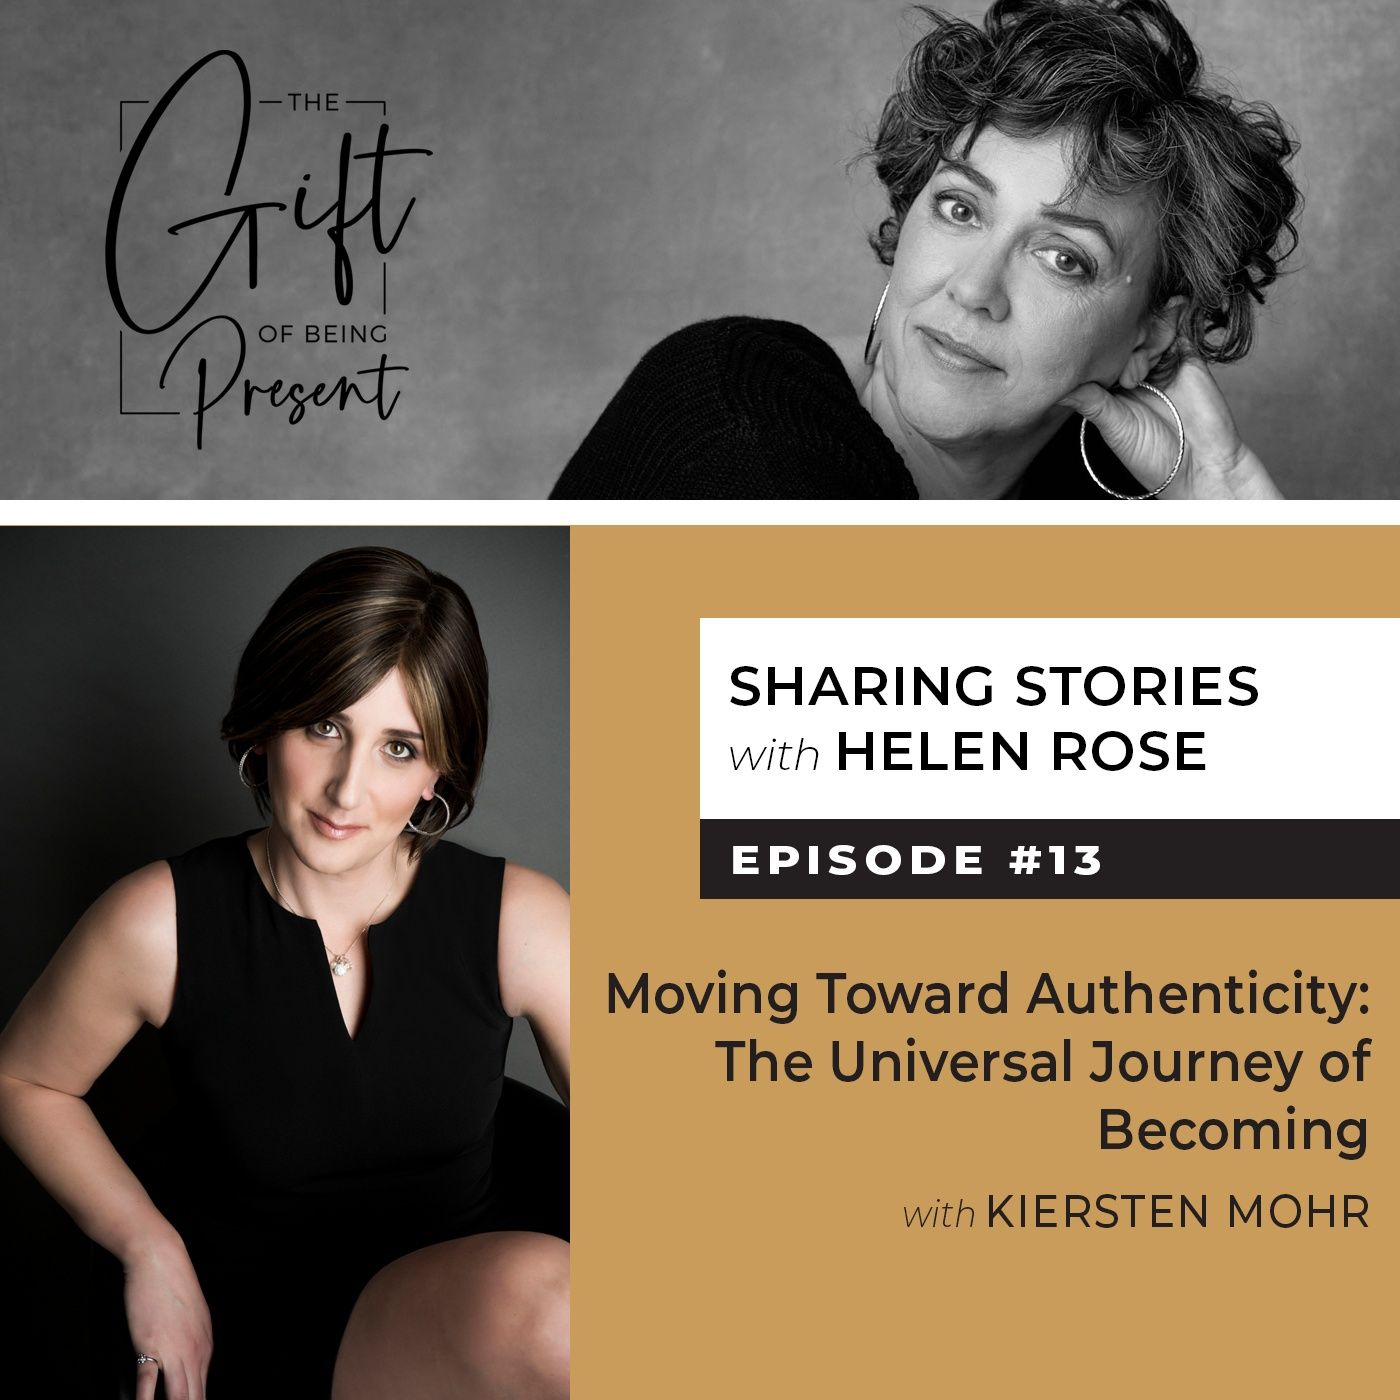 Moving Toward Authenticity: The Universal Journey of Becoming with Kiersten Mohr - Episode #13